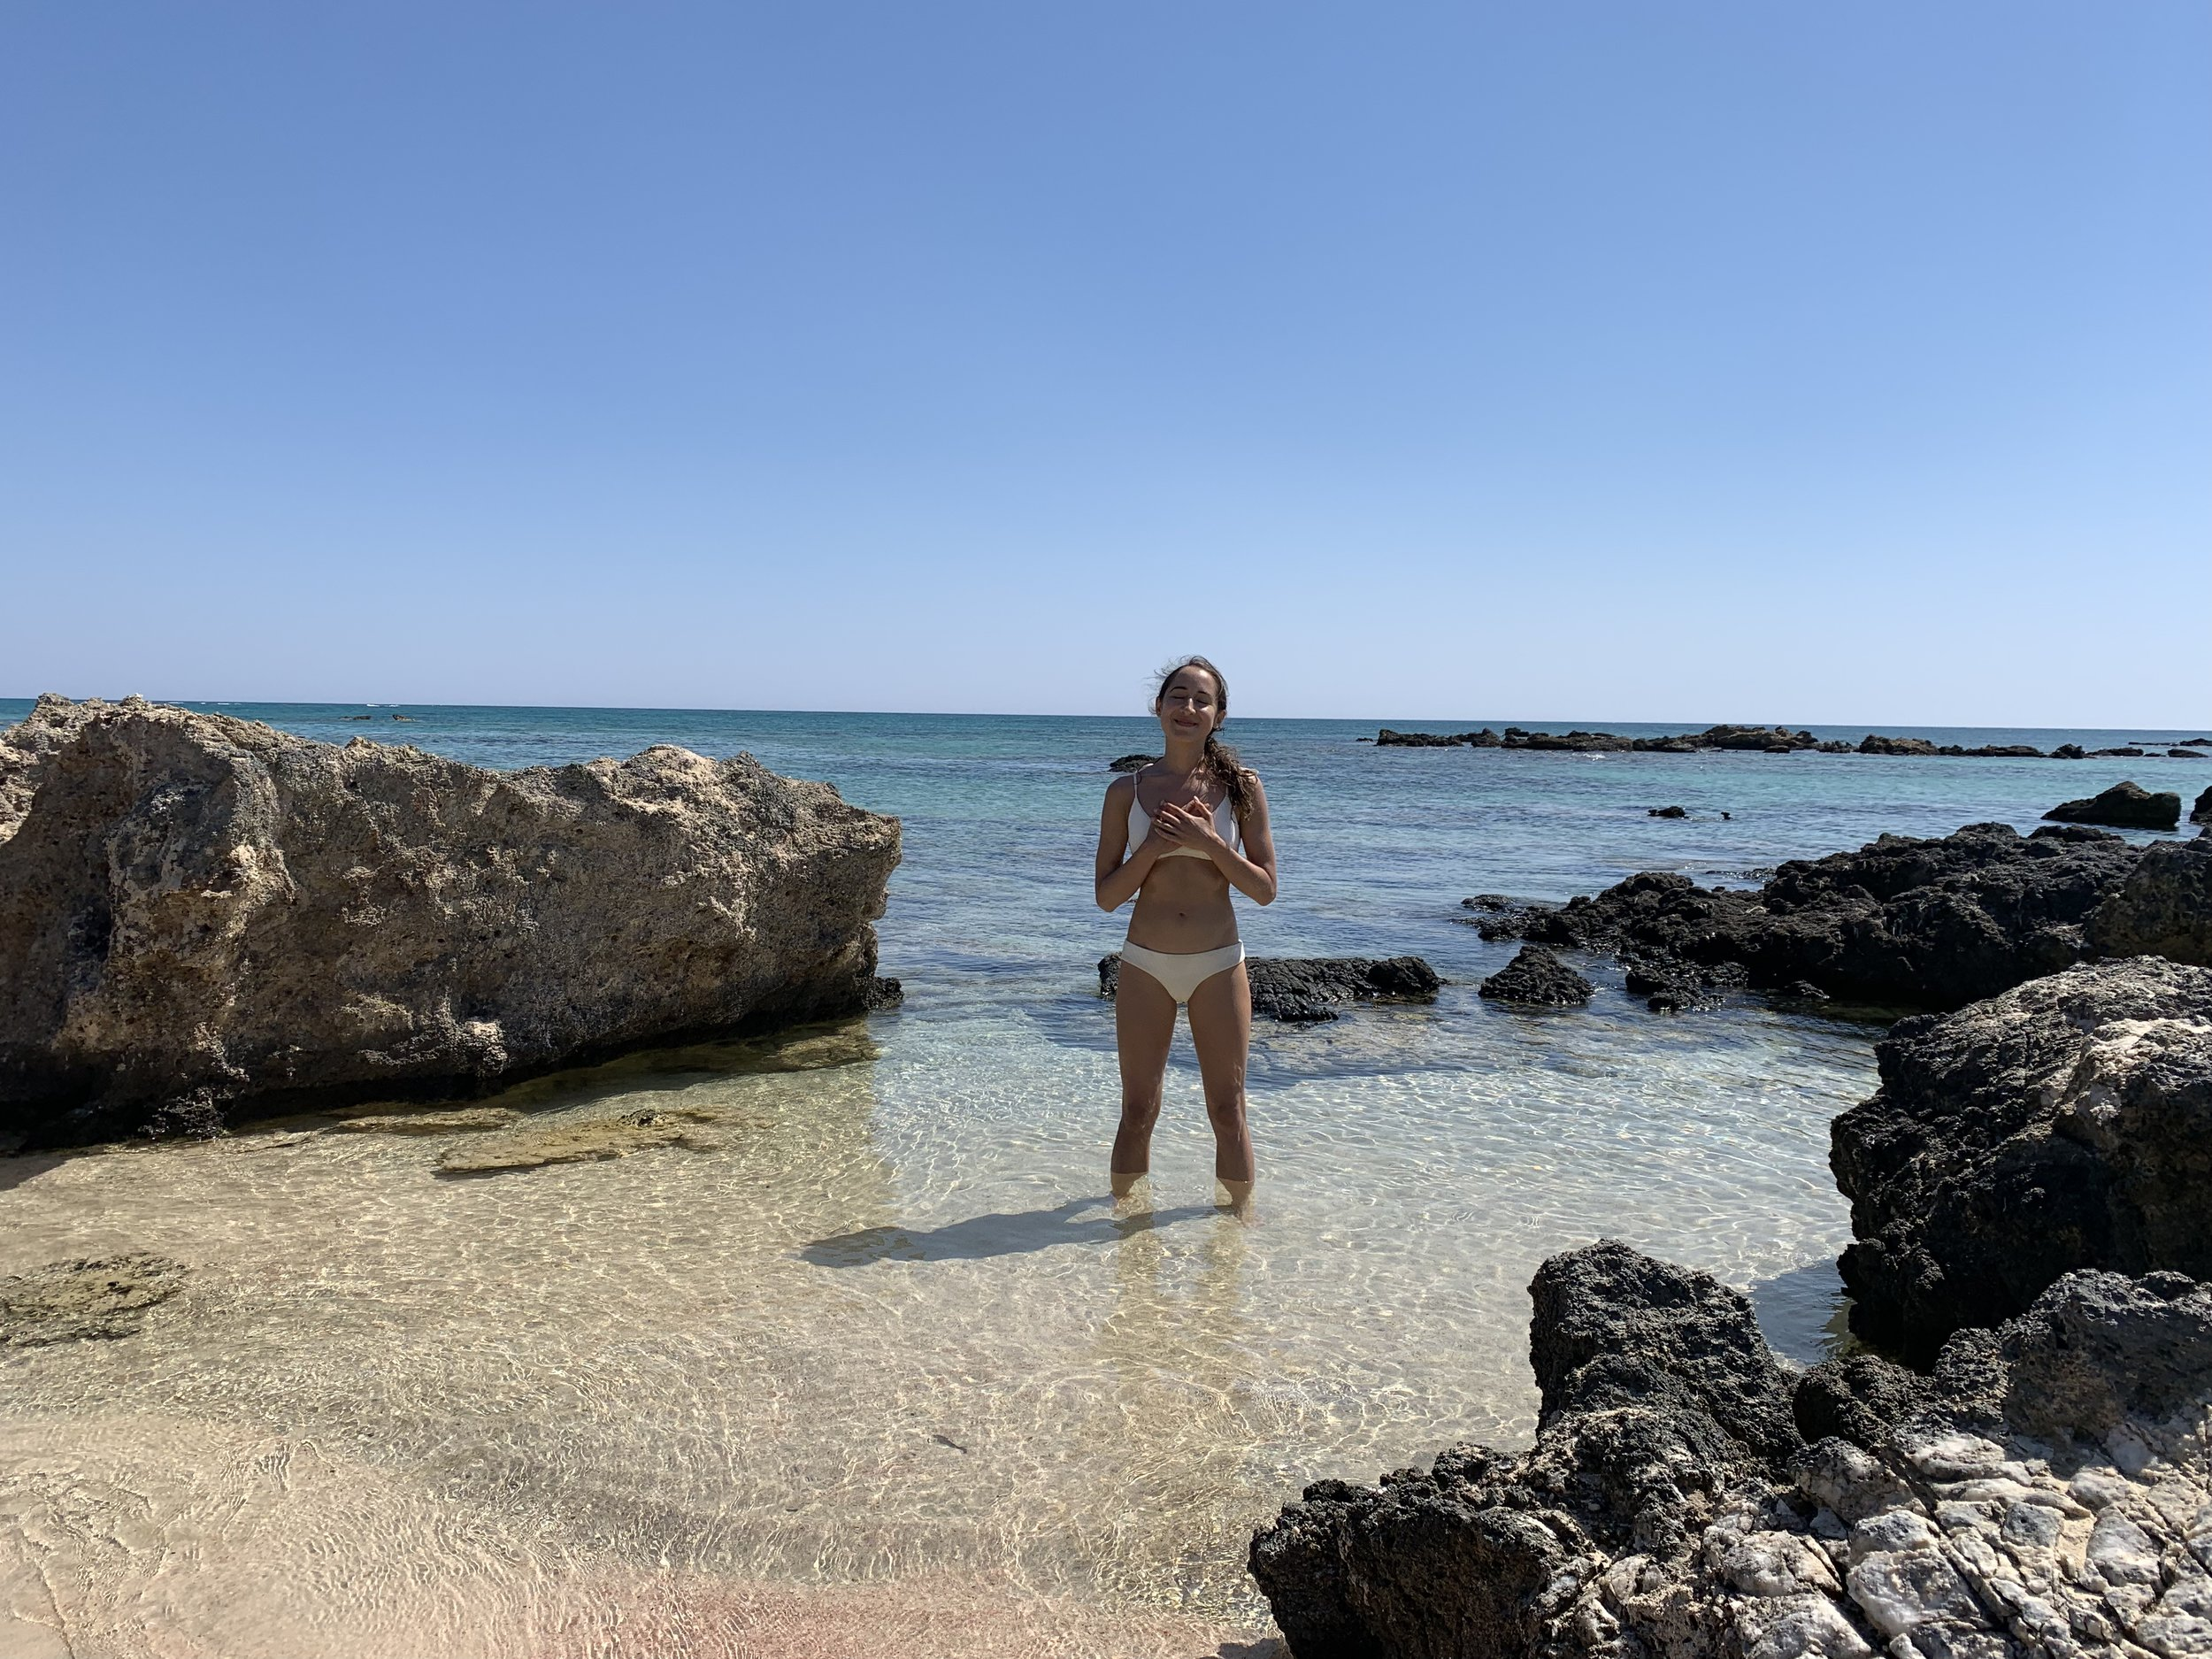 Here I am at Elafonisi beach where I'll be taking you! - Heaven On Earth is here. Come create and experience it!